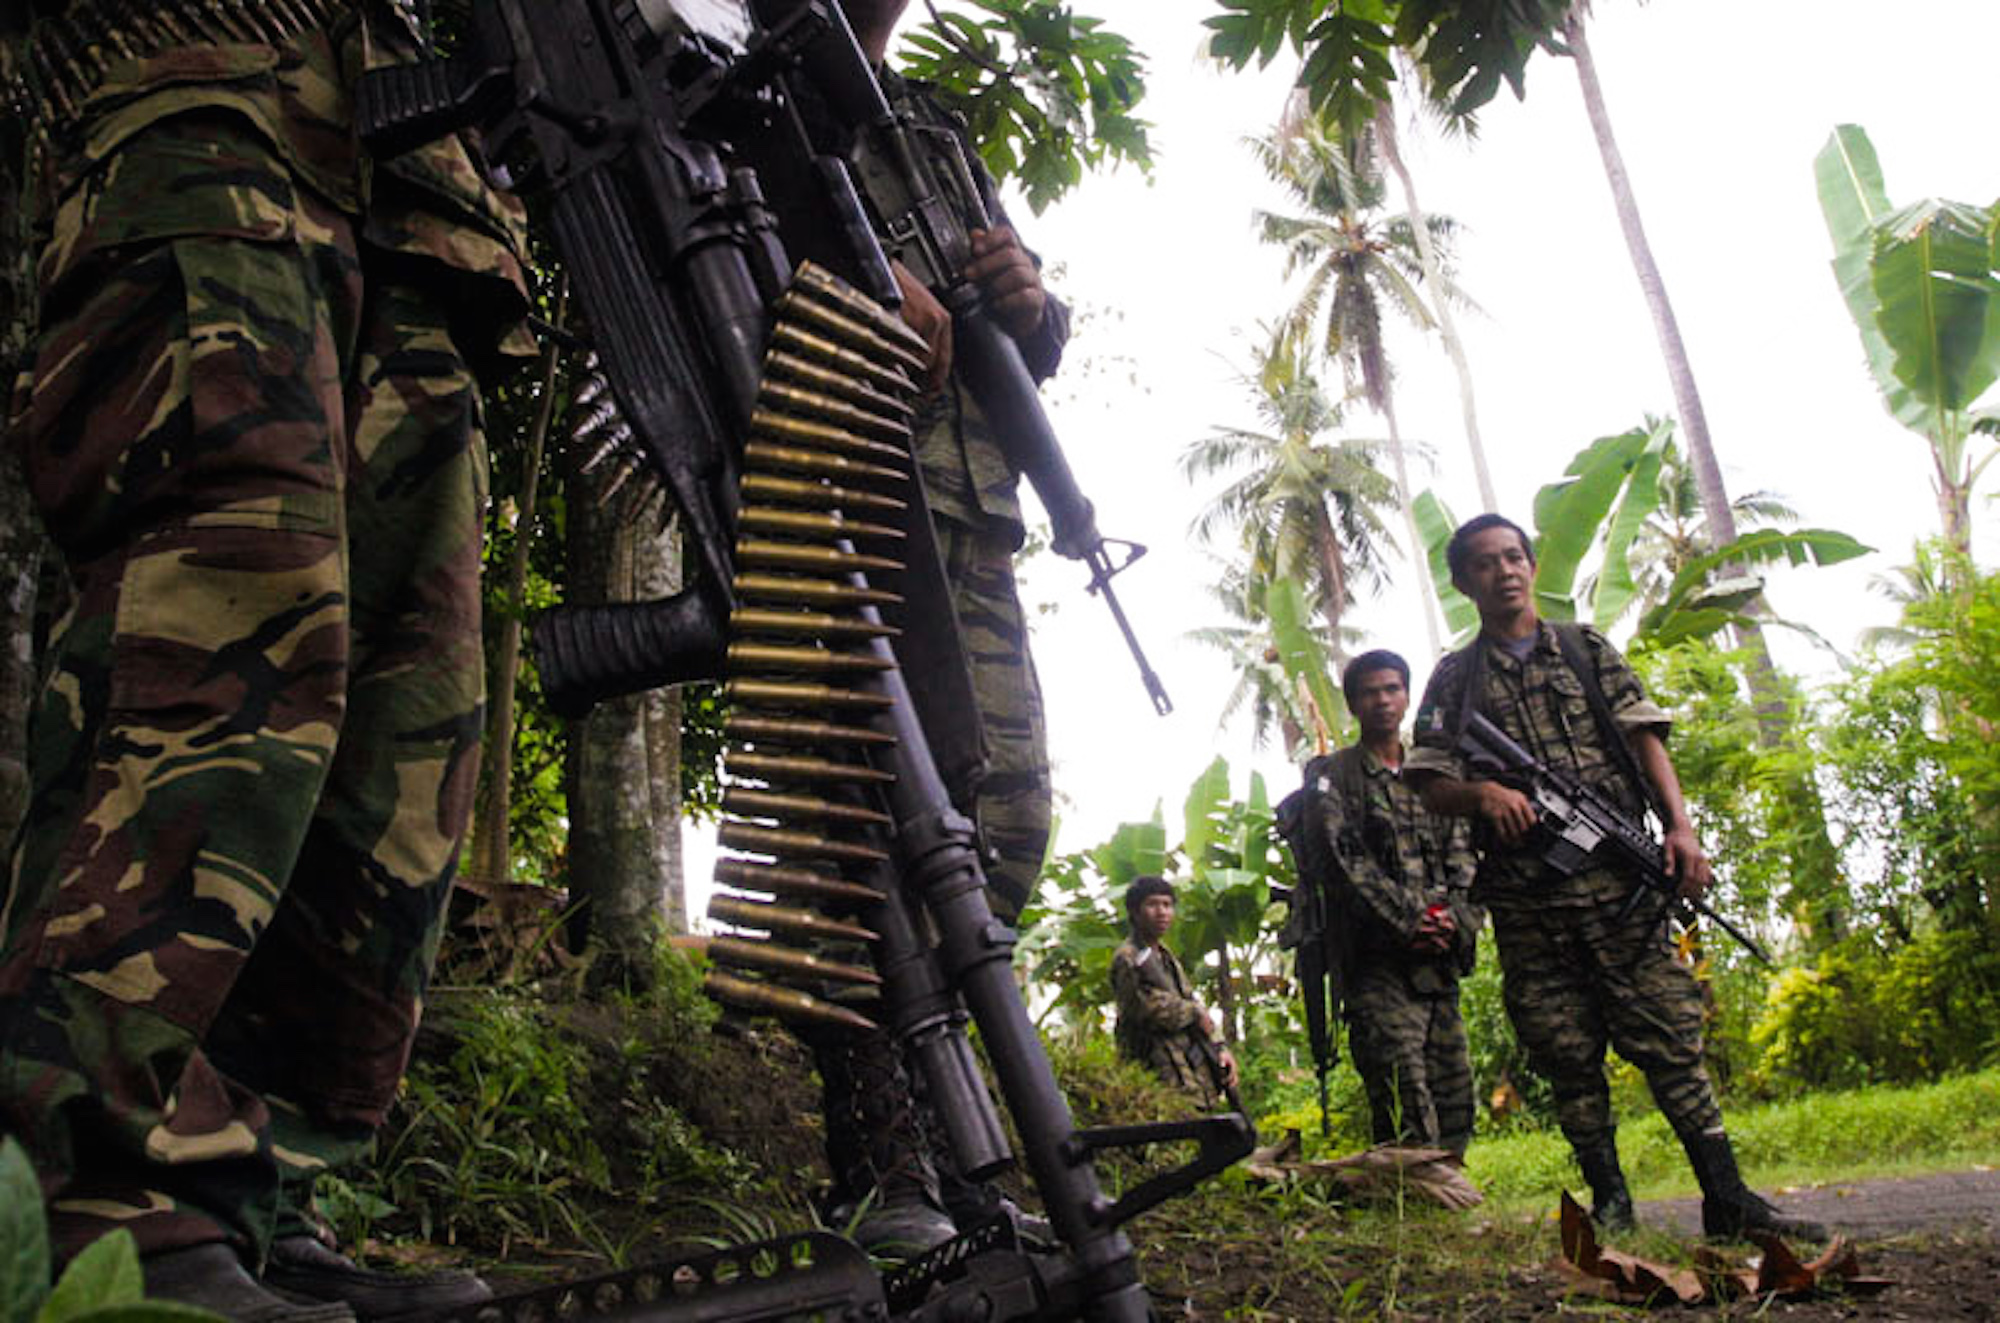 Camp Darapanan, Mindanao - Armed MILF guards patrol the grounds of a rebel camp in the southern Philippines